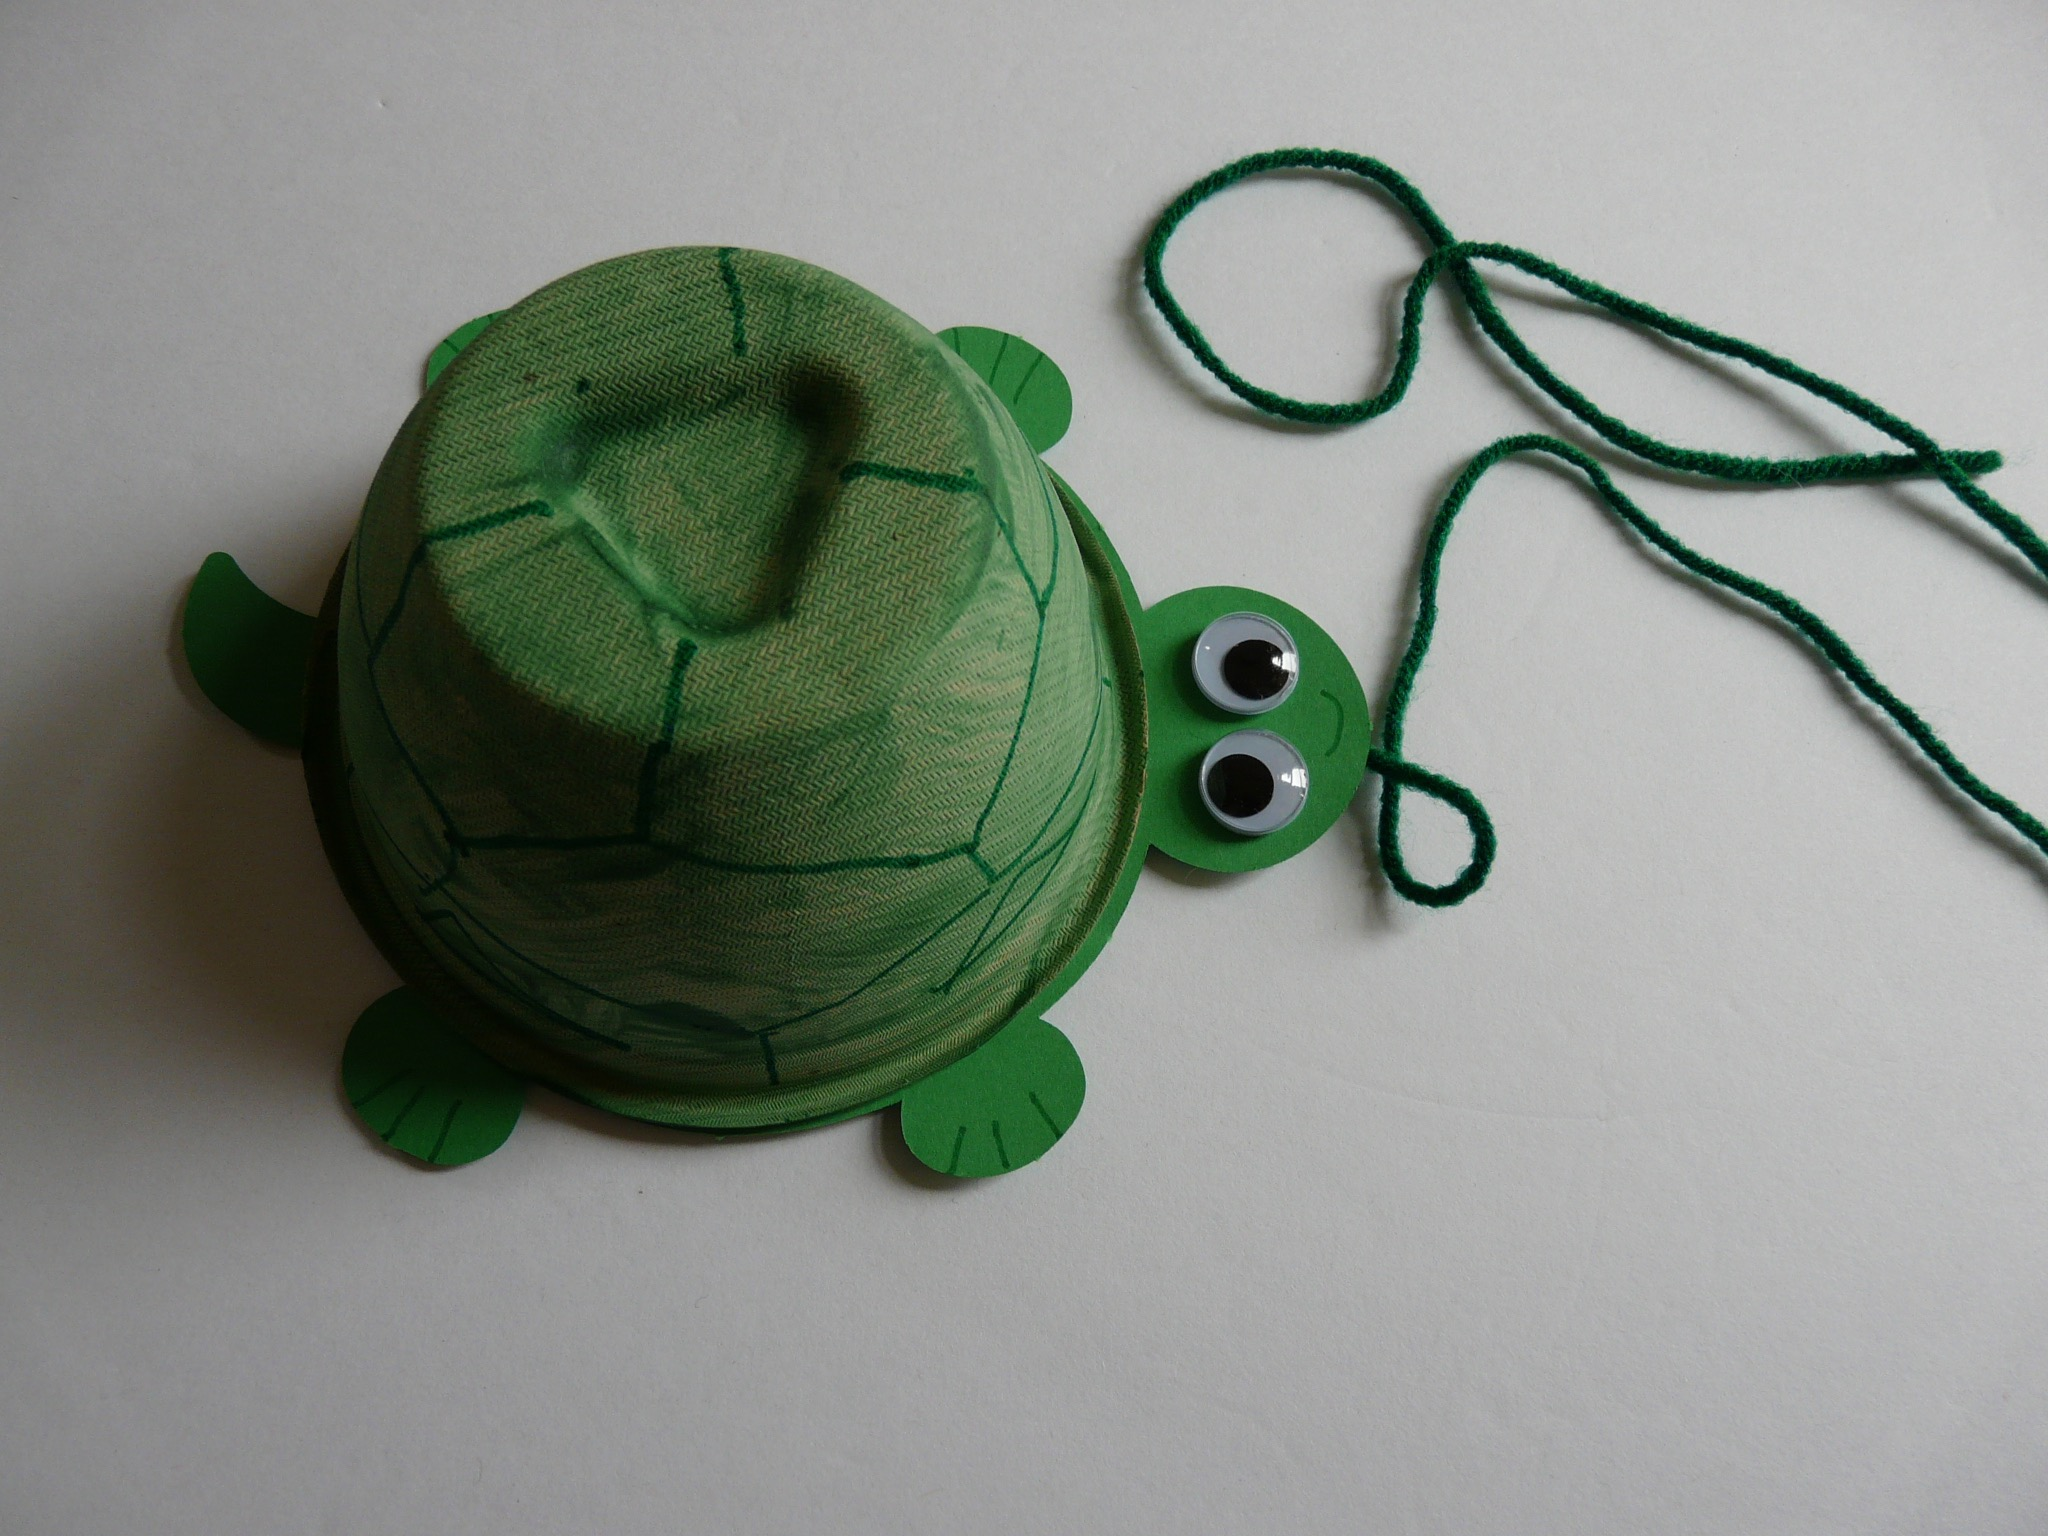 Turtle Pull Toy by Haydee Montemayor from Love and Terasure Blog www.loveandtreasure.com